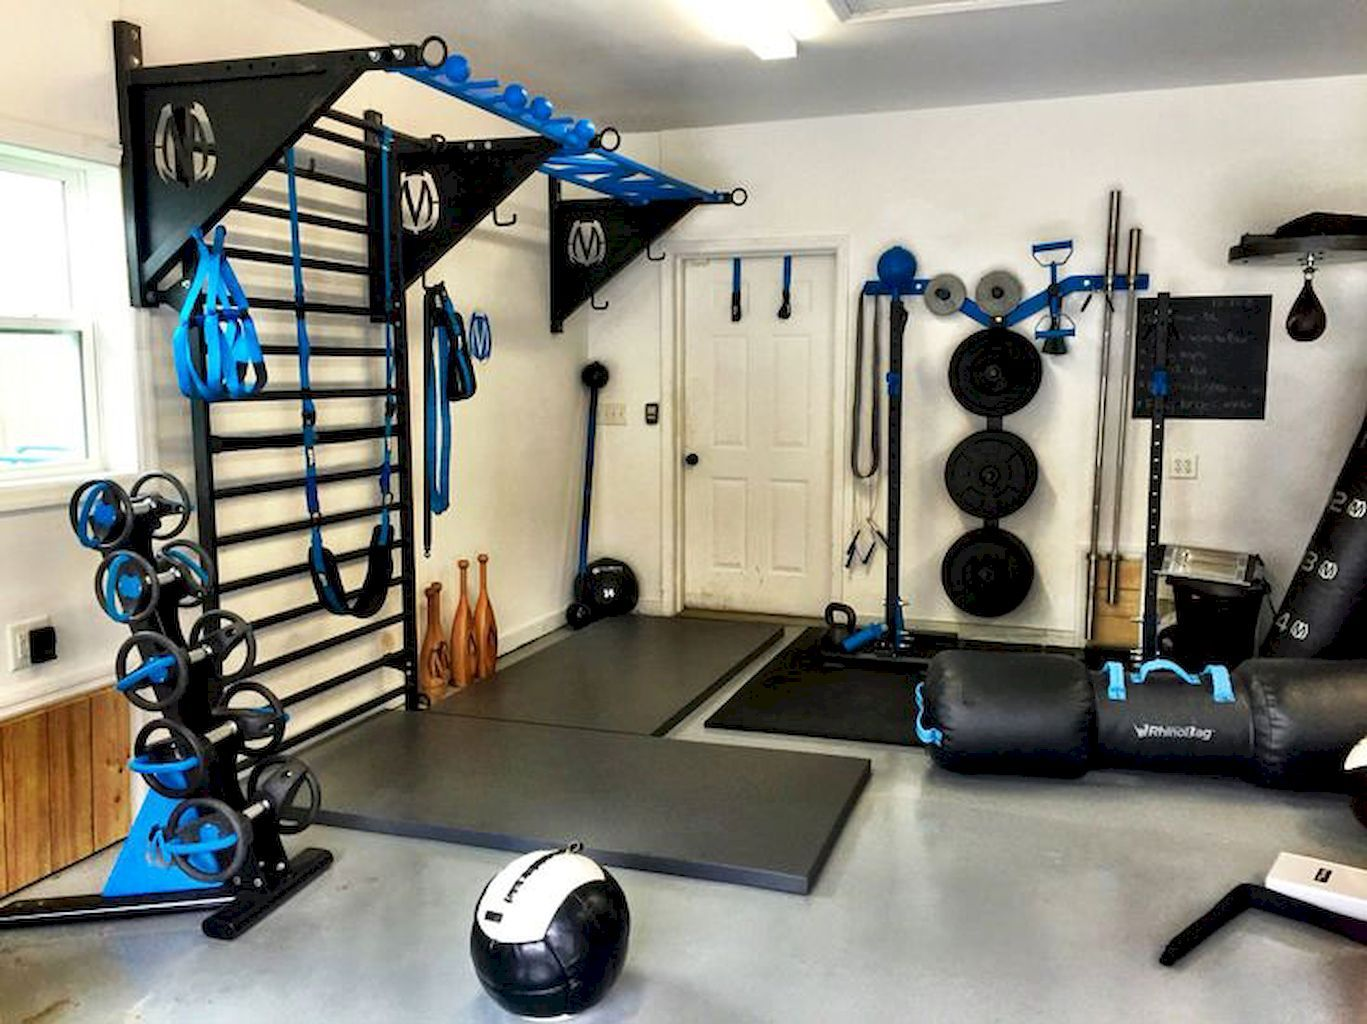 60 Cool Home Gym Ideas Decoration On A Budget For Small Room With Images Home Gym Design At Home Gym Best Home Gym